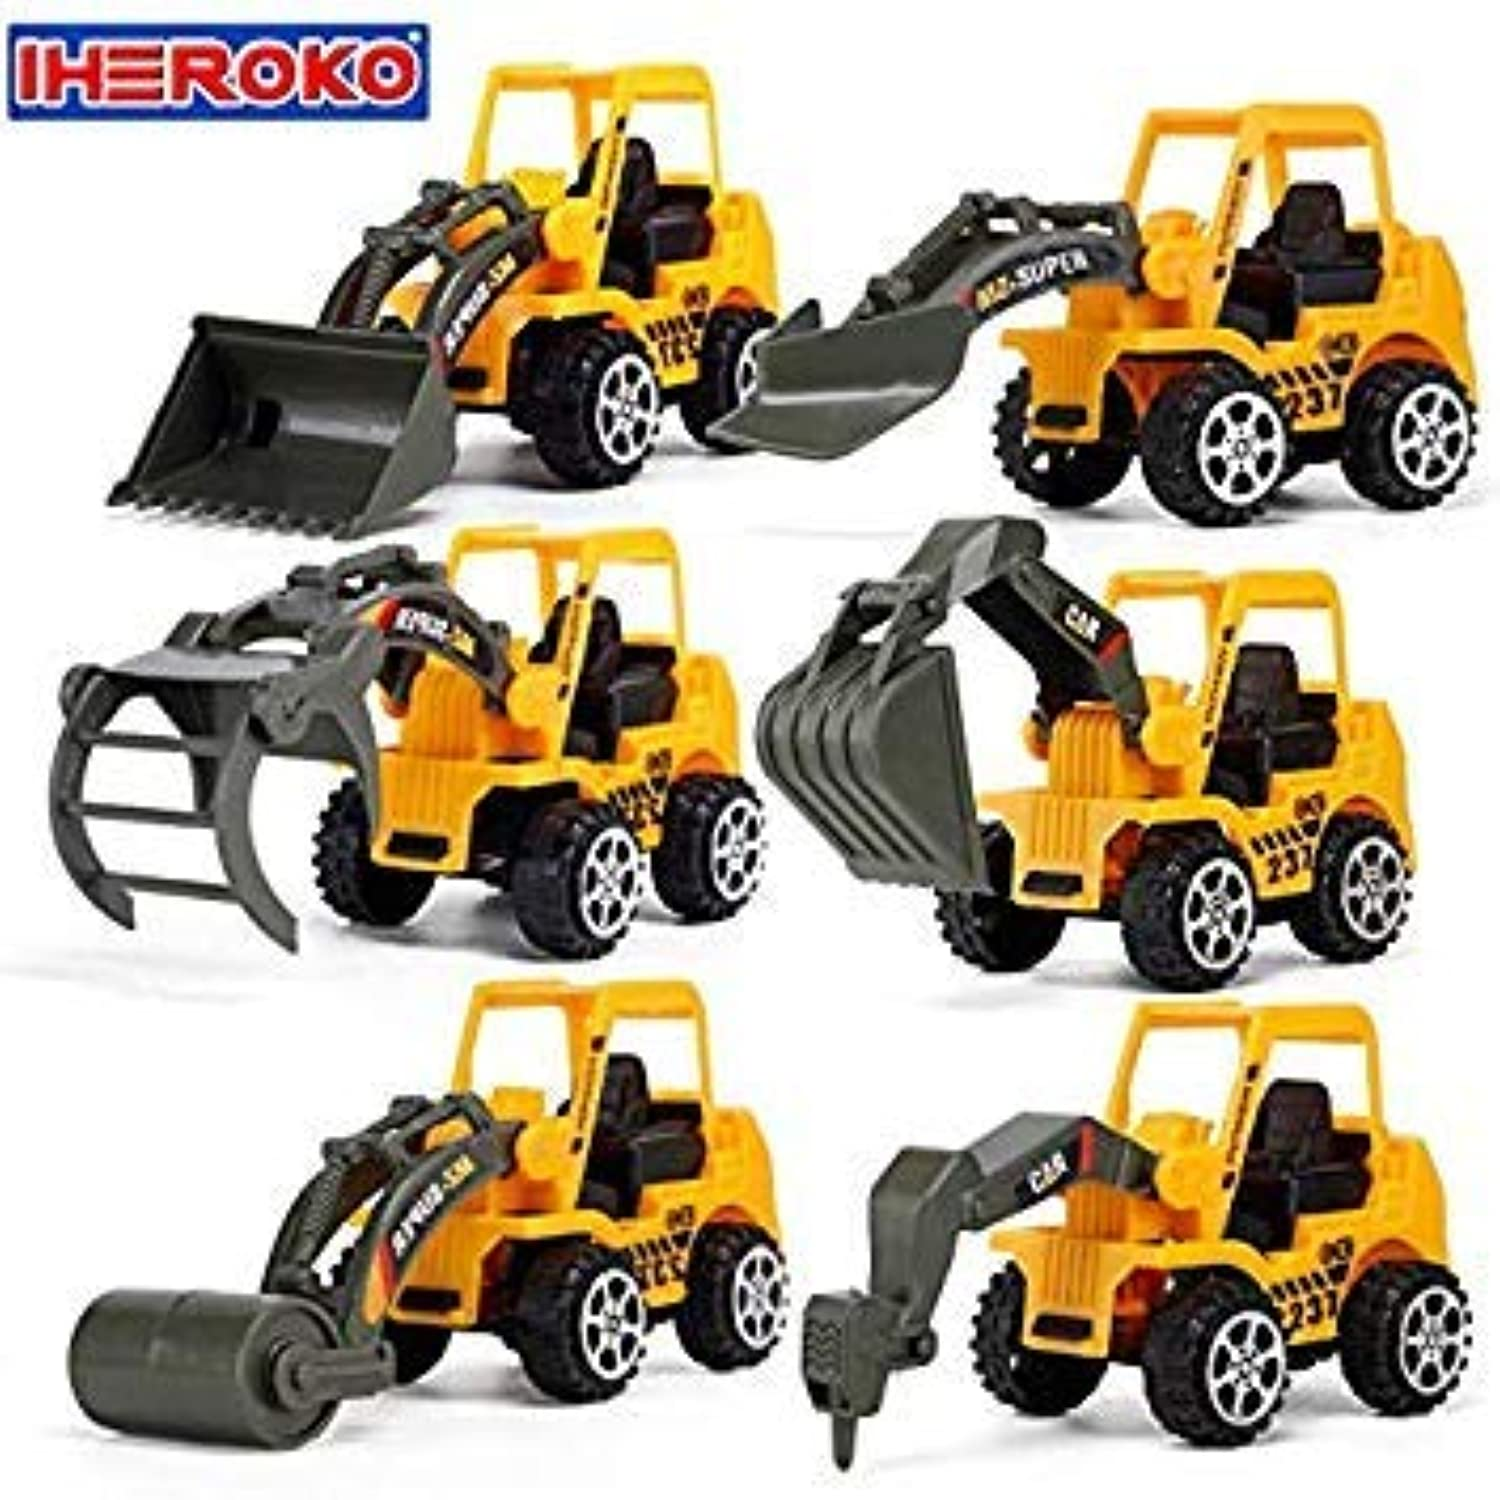 6 Types Mini Diecast Plastic Construction Vehicle Engineering Car Bulldozing Pressure Soil Truck Model Classic Toy Gift for Boy